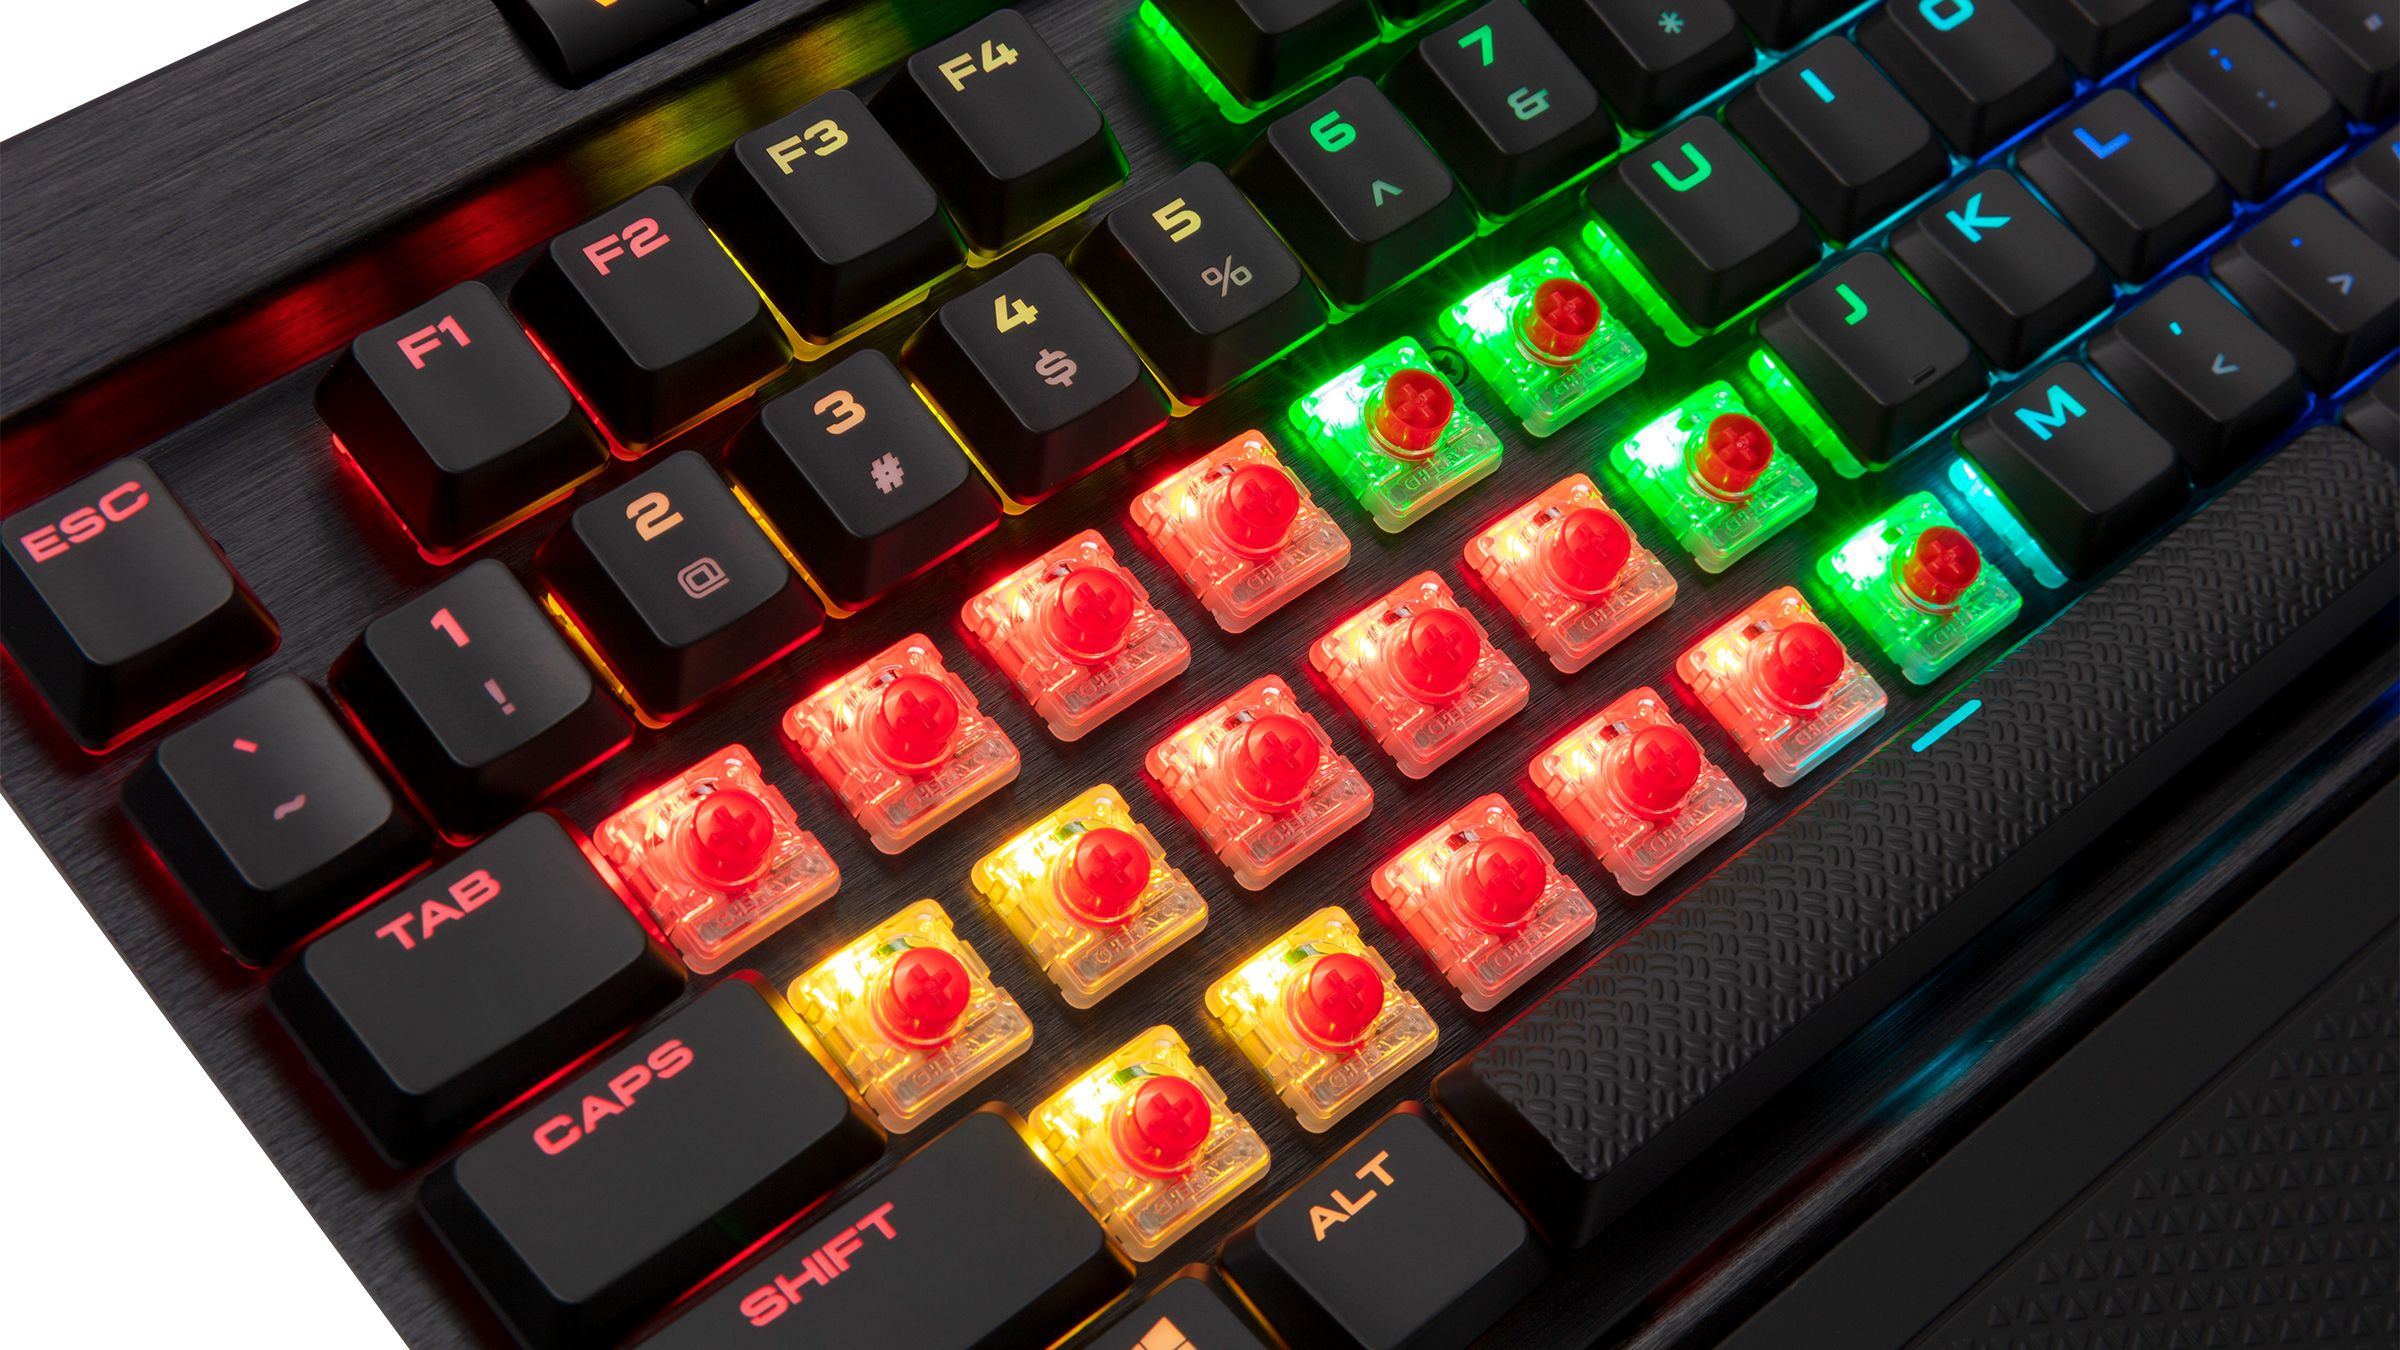 ac9abf08632 Corsair First To Market With Cherry MX RGB Low-Profile Switches ...